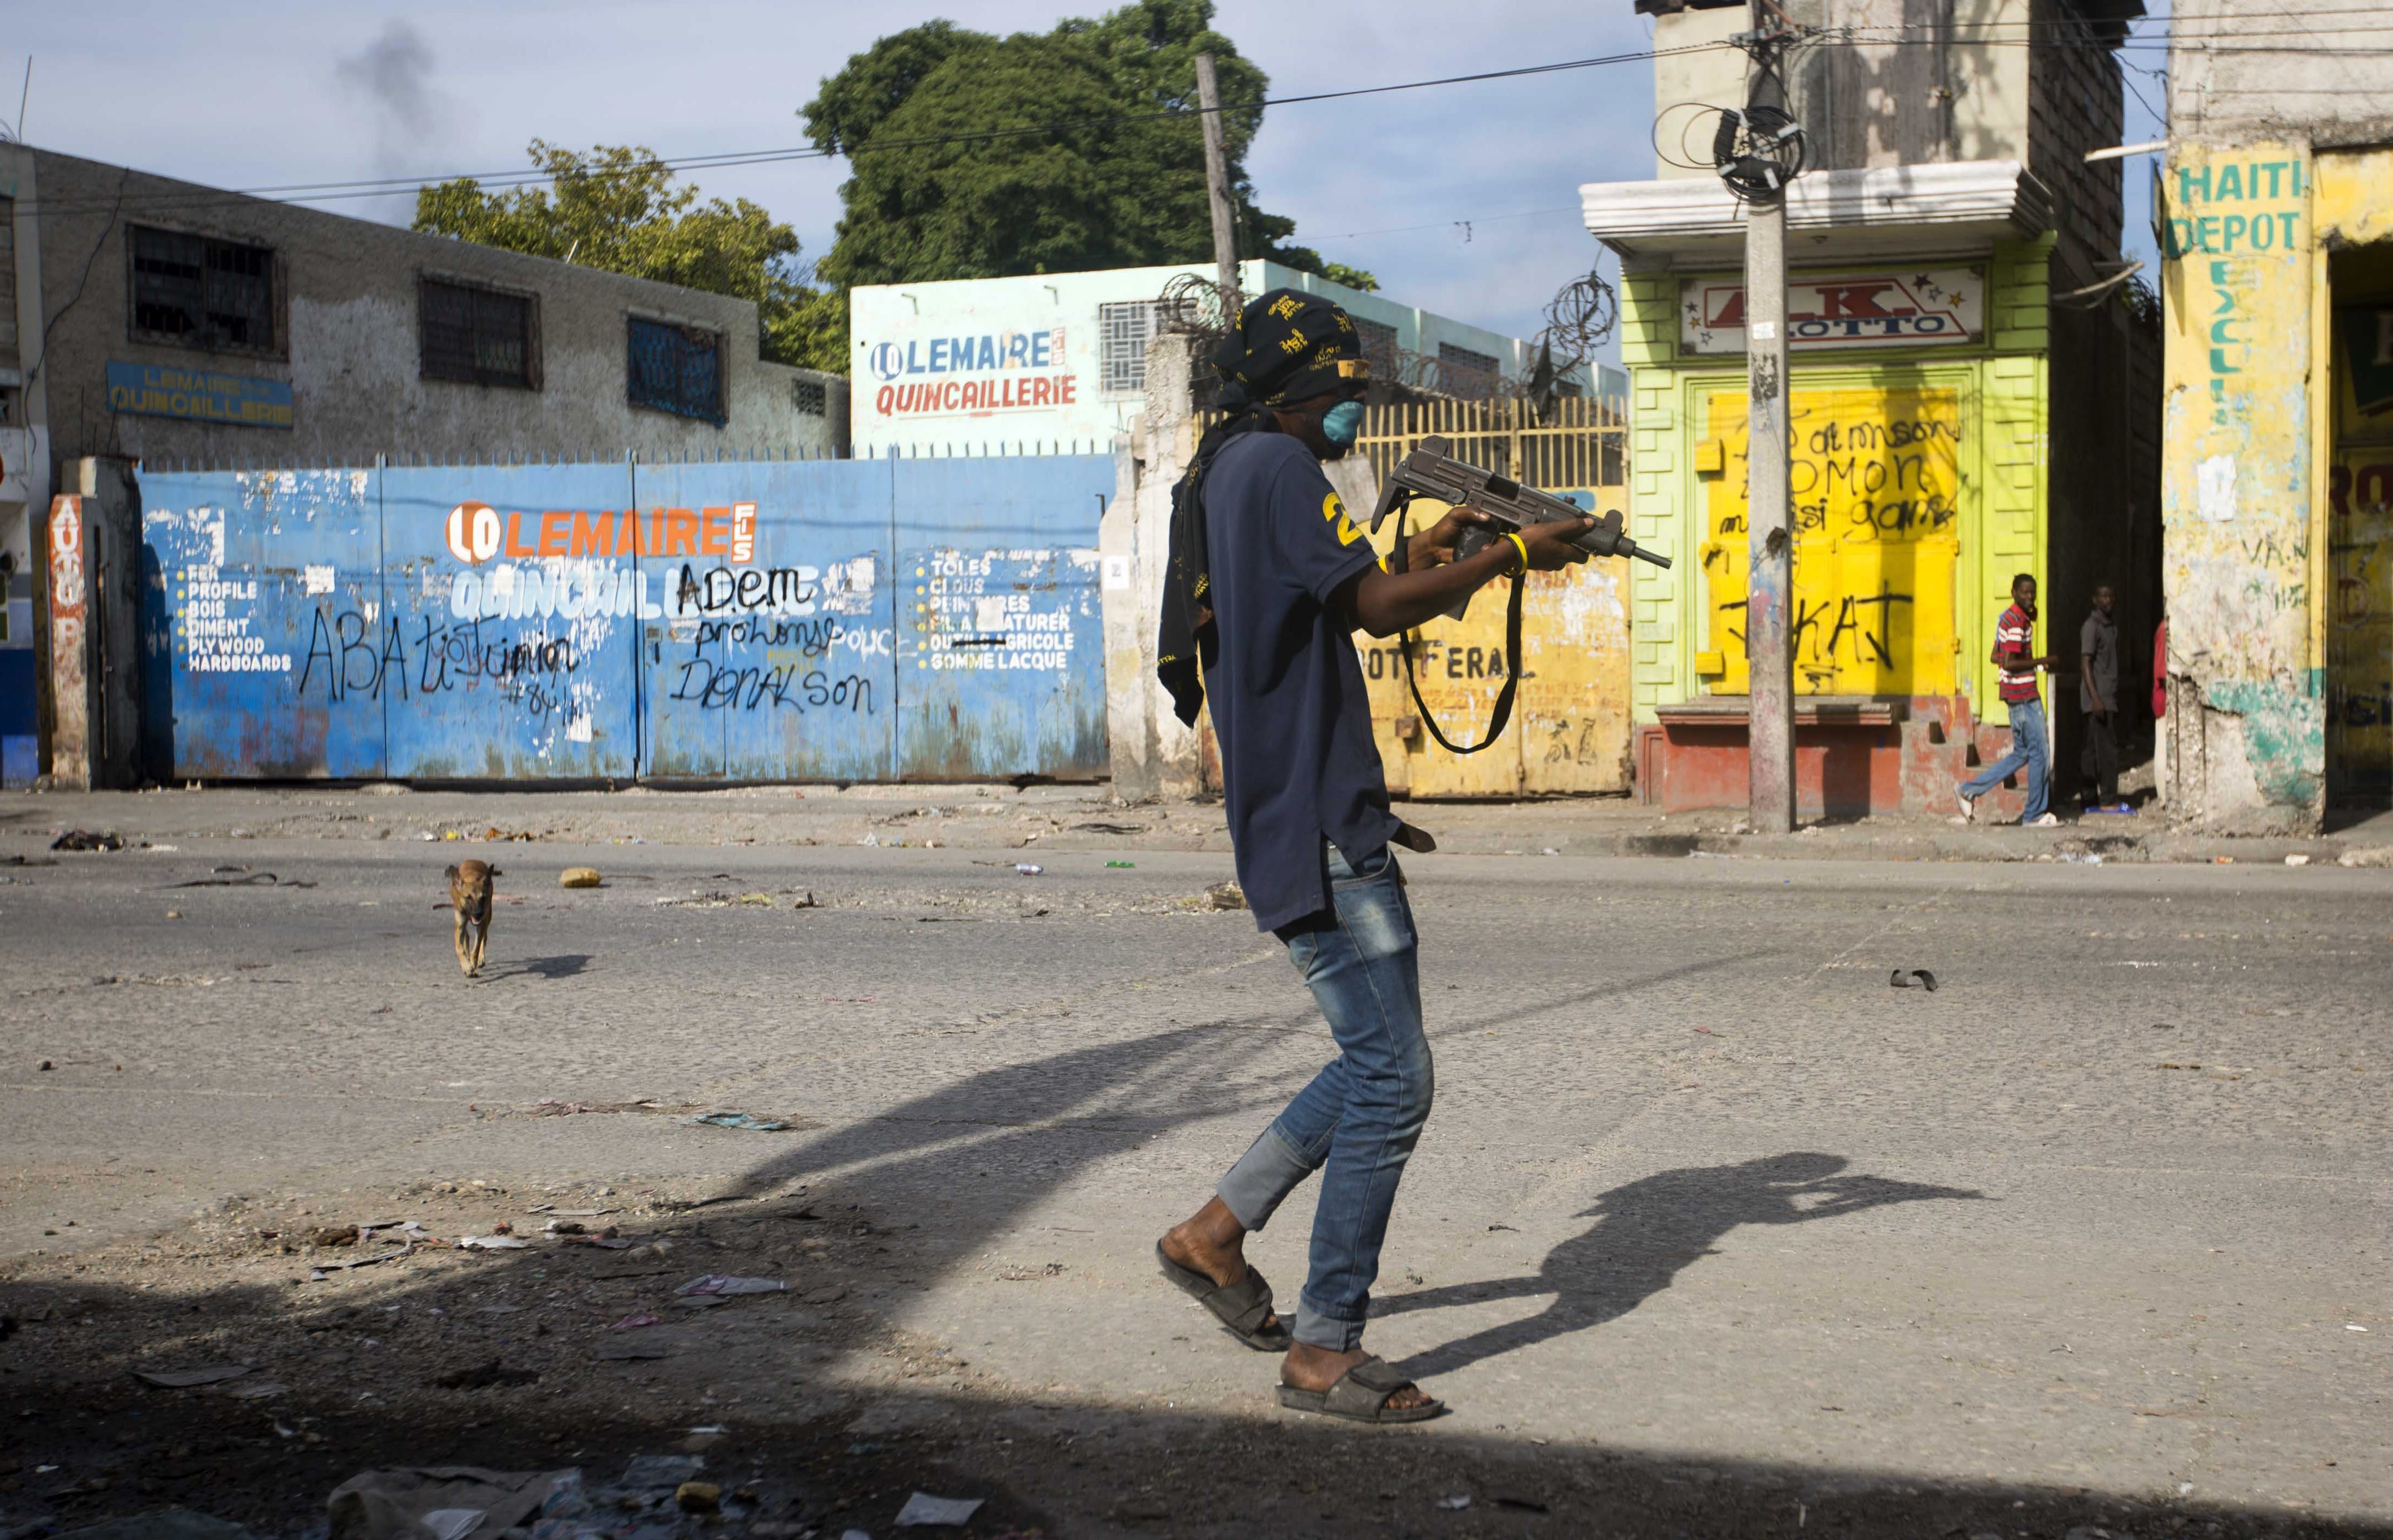 An armed civilian carries a weapon on during a shootout between rival gangs to take control of the Croix-des-Bossales market, on Boulevard Jean-Jacques Dessalines, a main commercial artery, in Port-au-Prince, Haiti, Wednesday, Nov. 21, 2018. The fight for control of the market, where vendors pay the controlling gang regular payments, erupted amid days of protests and a strike against alleged government corruption. (AP Photo/Dieu Nalio Chery)